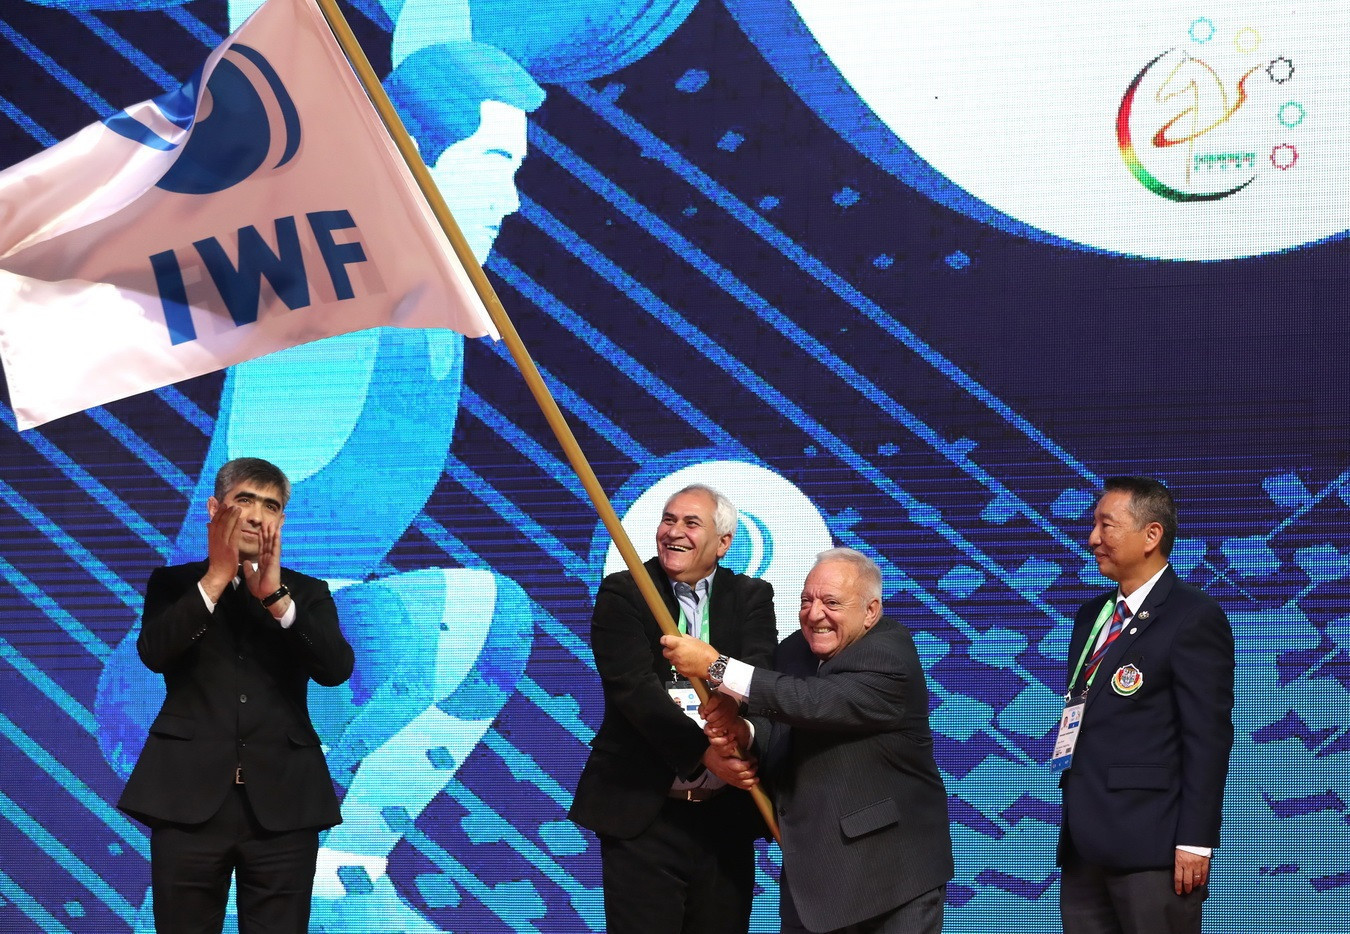 IWF President Aján lauds 2018 World Championships as milestone edition